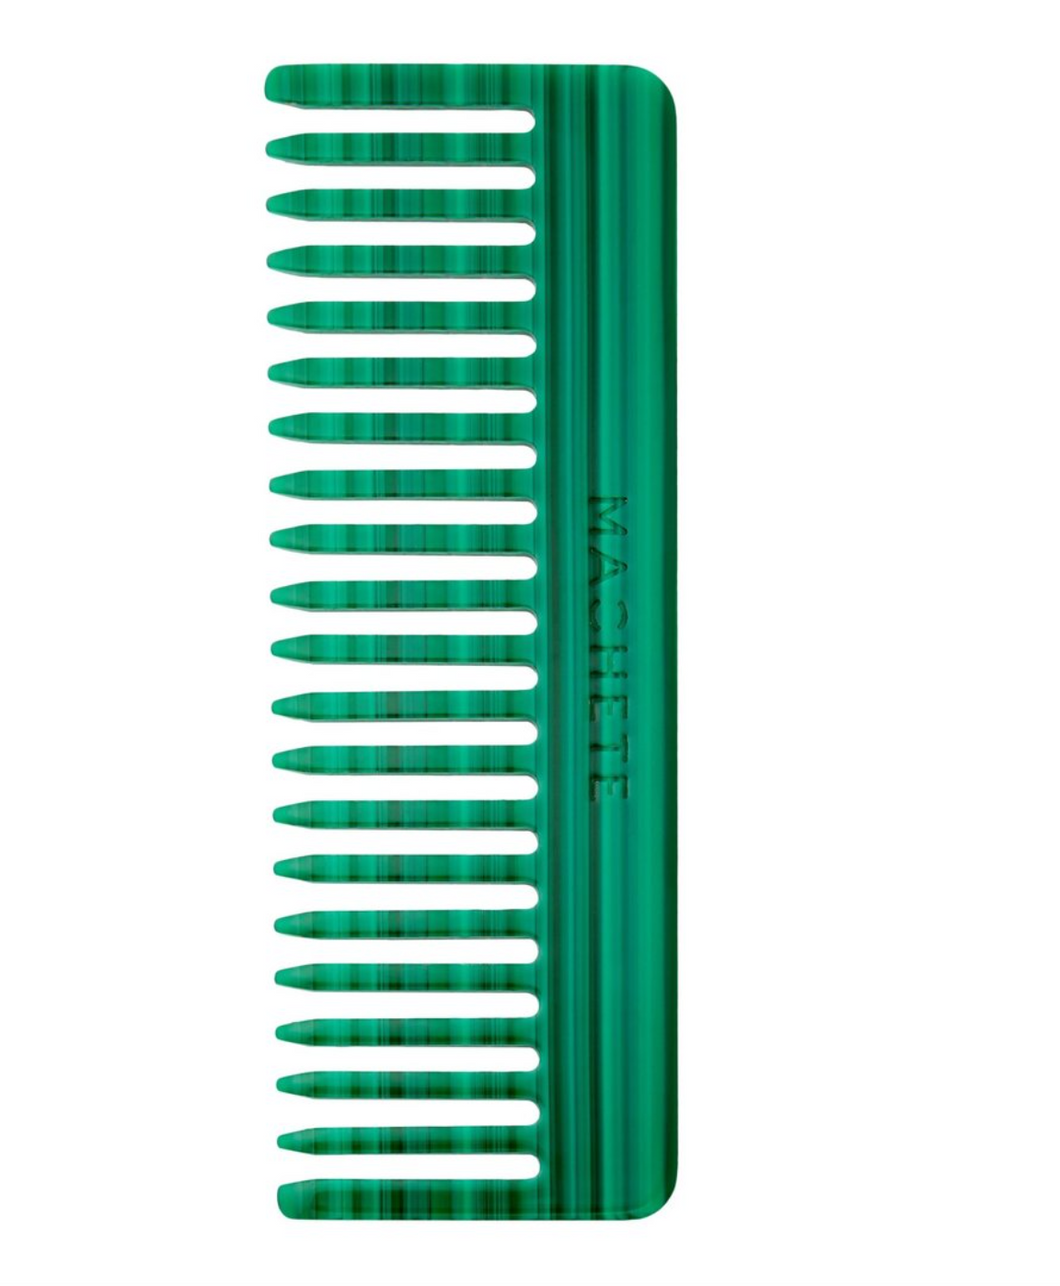 Machete - No. 2 Comb